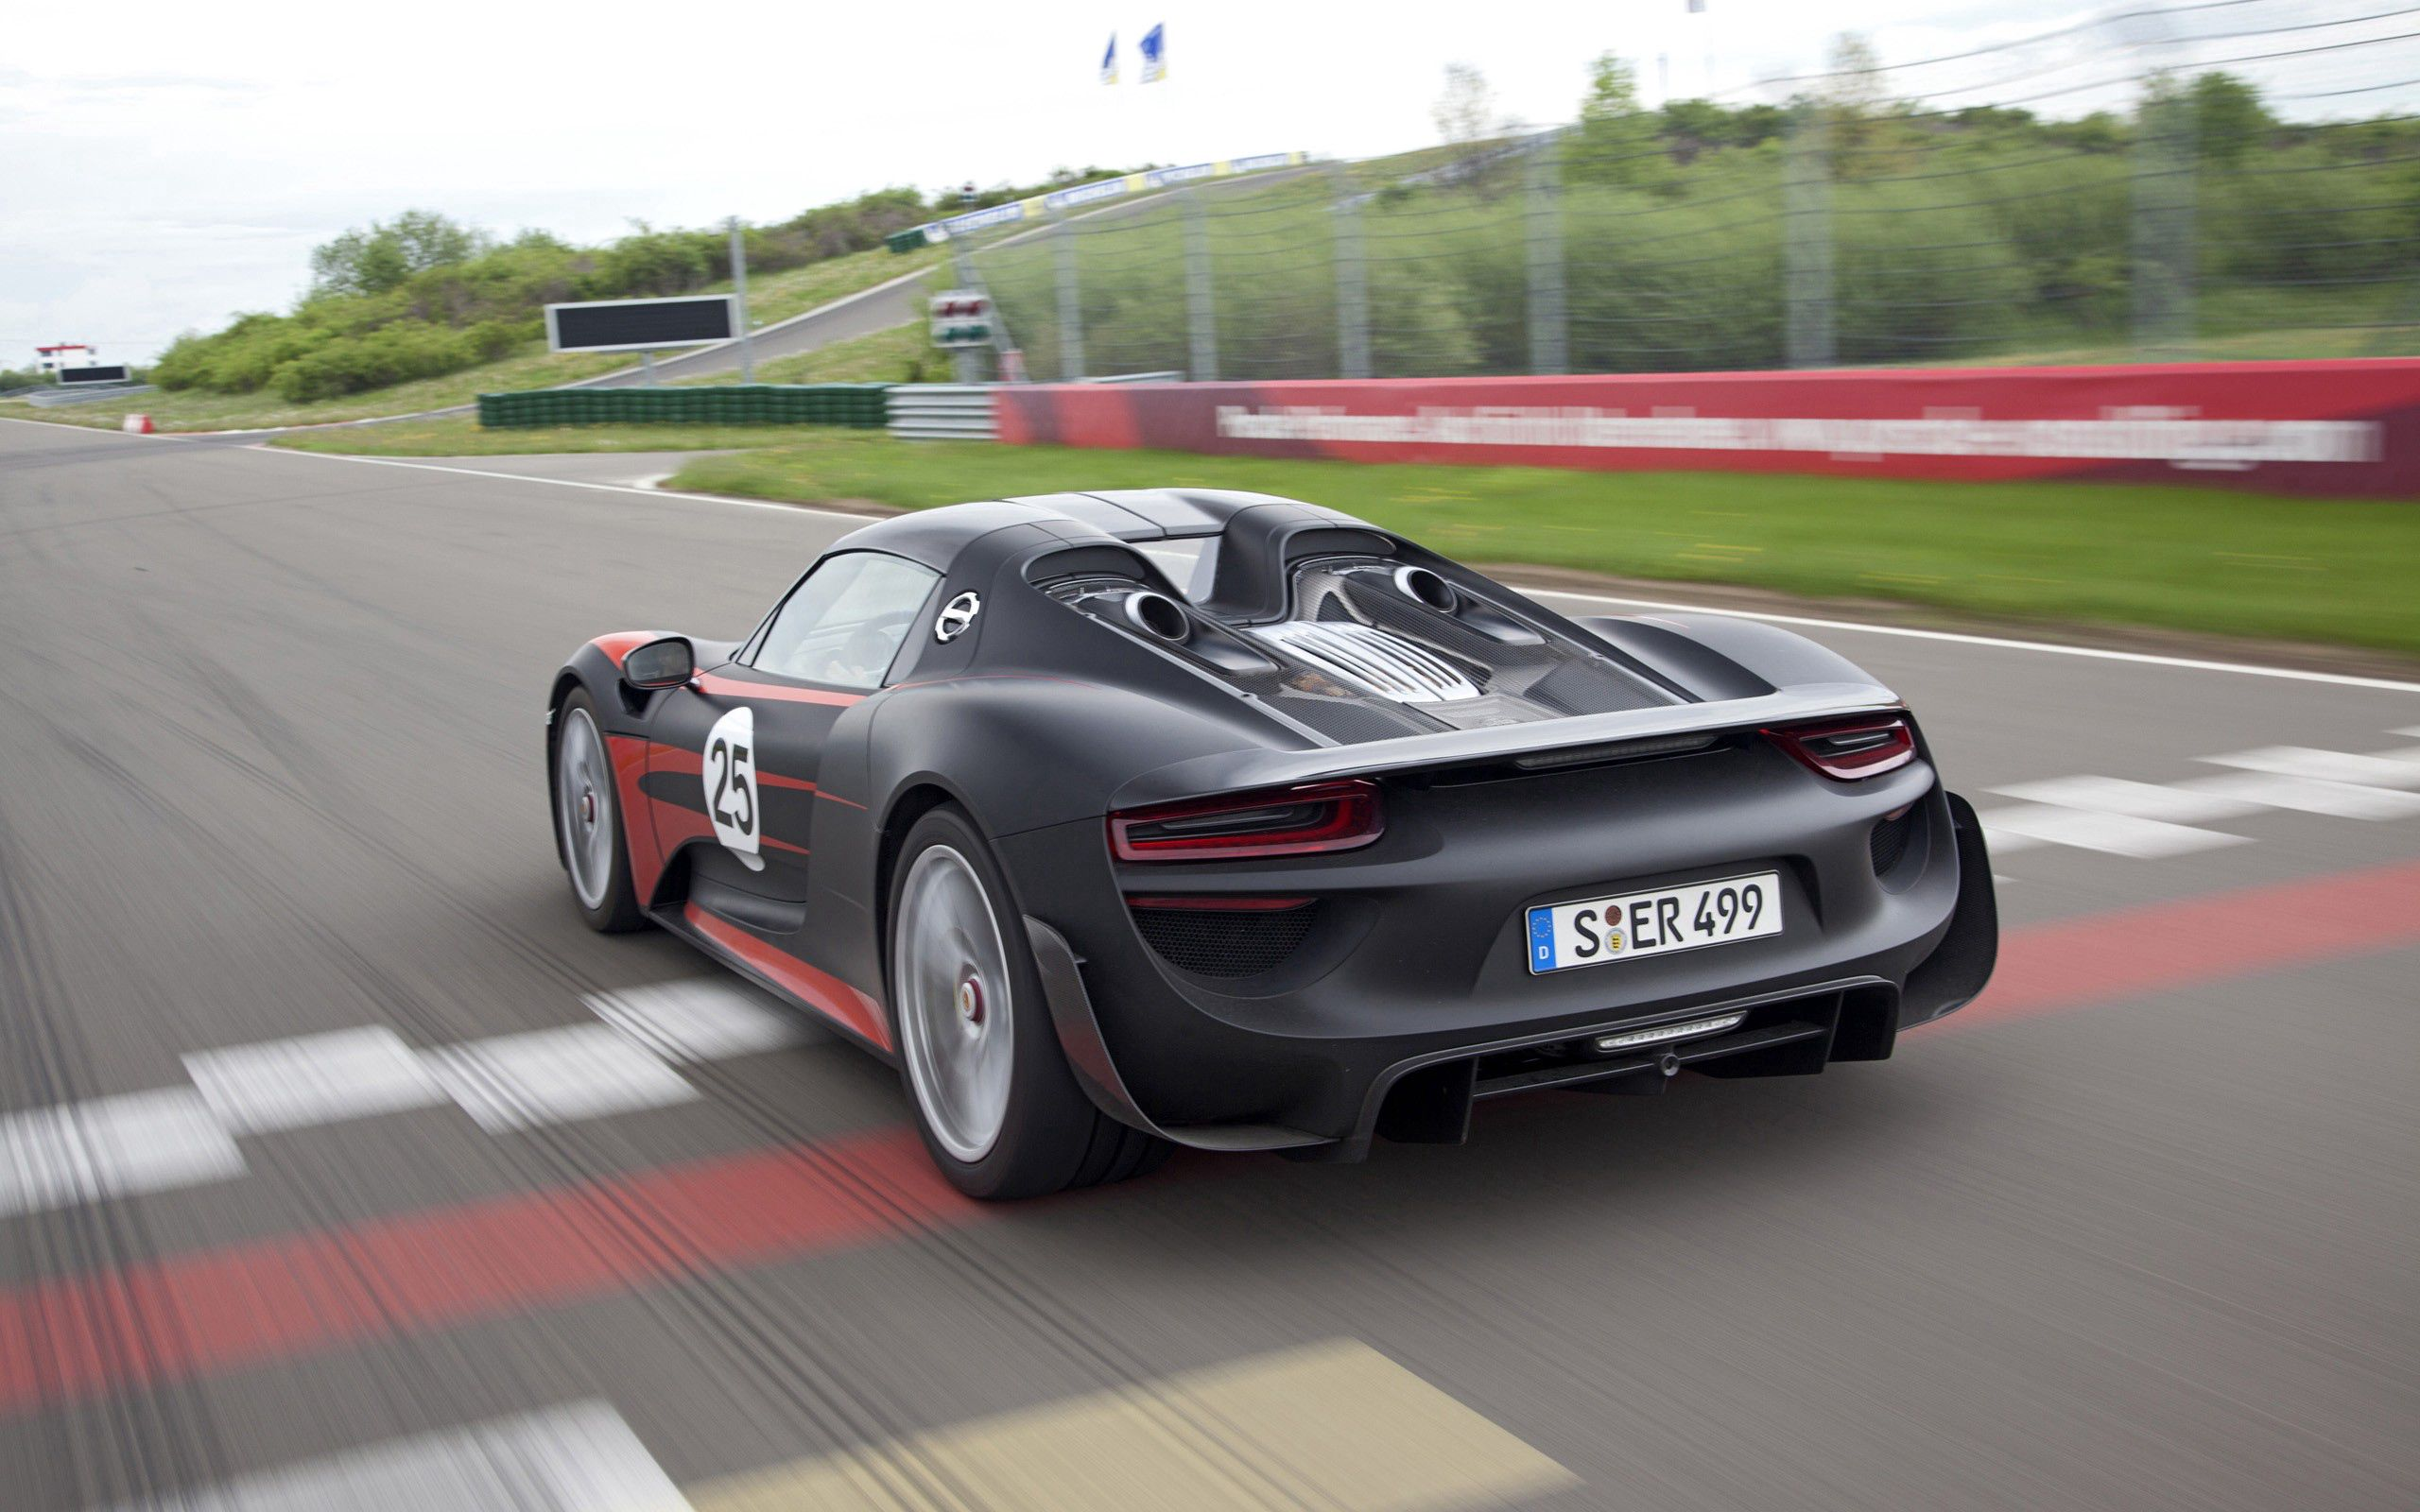 141852 download wallpaper Cars, Porsche 918, Porsche, Auto, Road, Speed screensavers and pictures for free